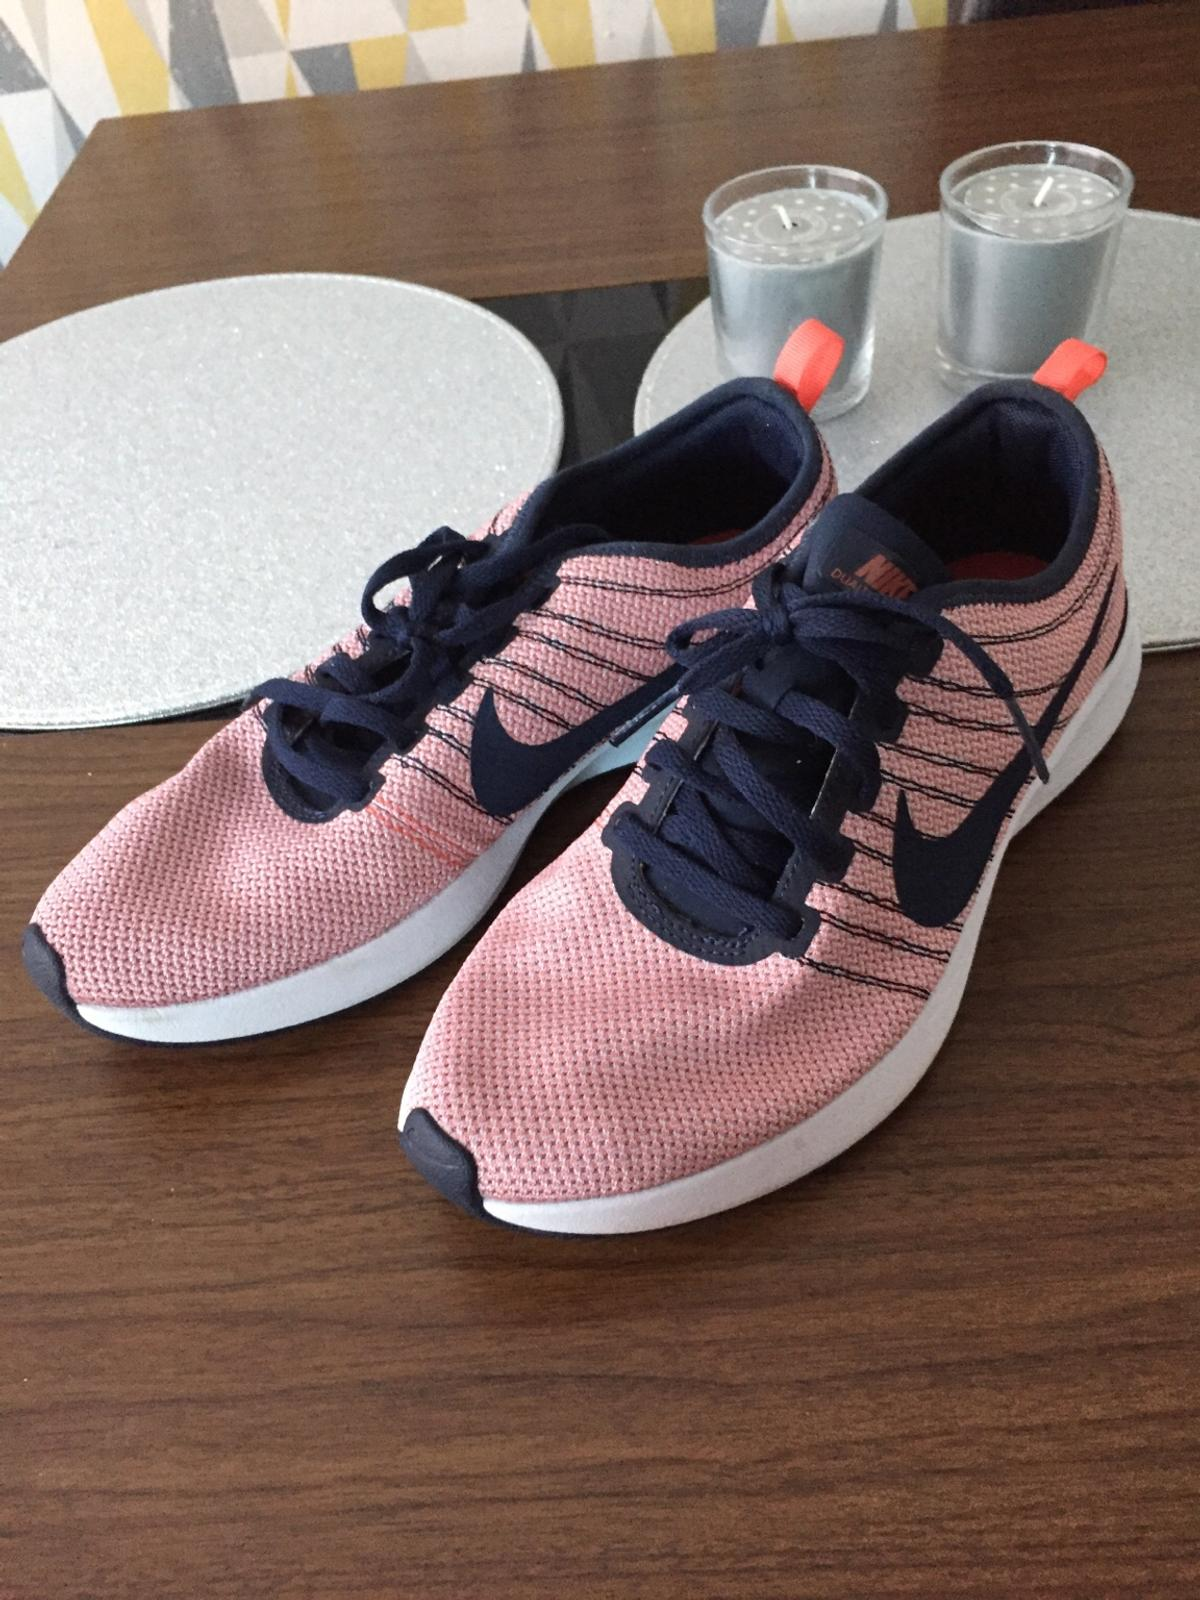 65e5fa4d3f84 Ladies Nike size 7 running trainers in PR25 Ribble for £17.00 for ...